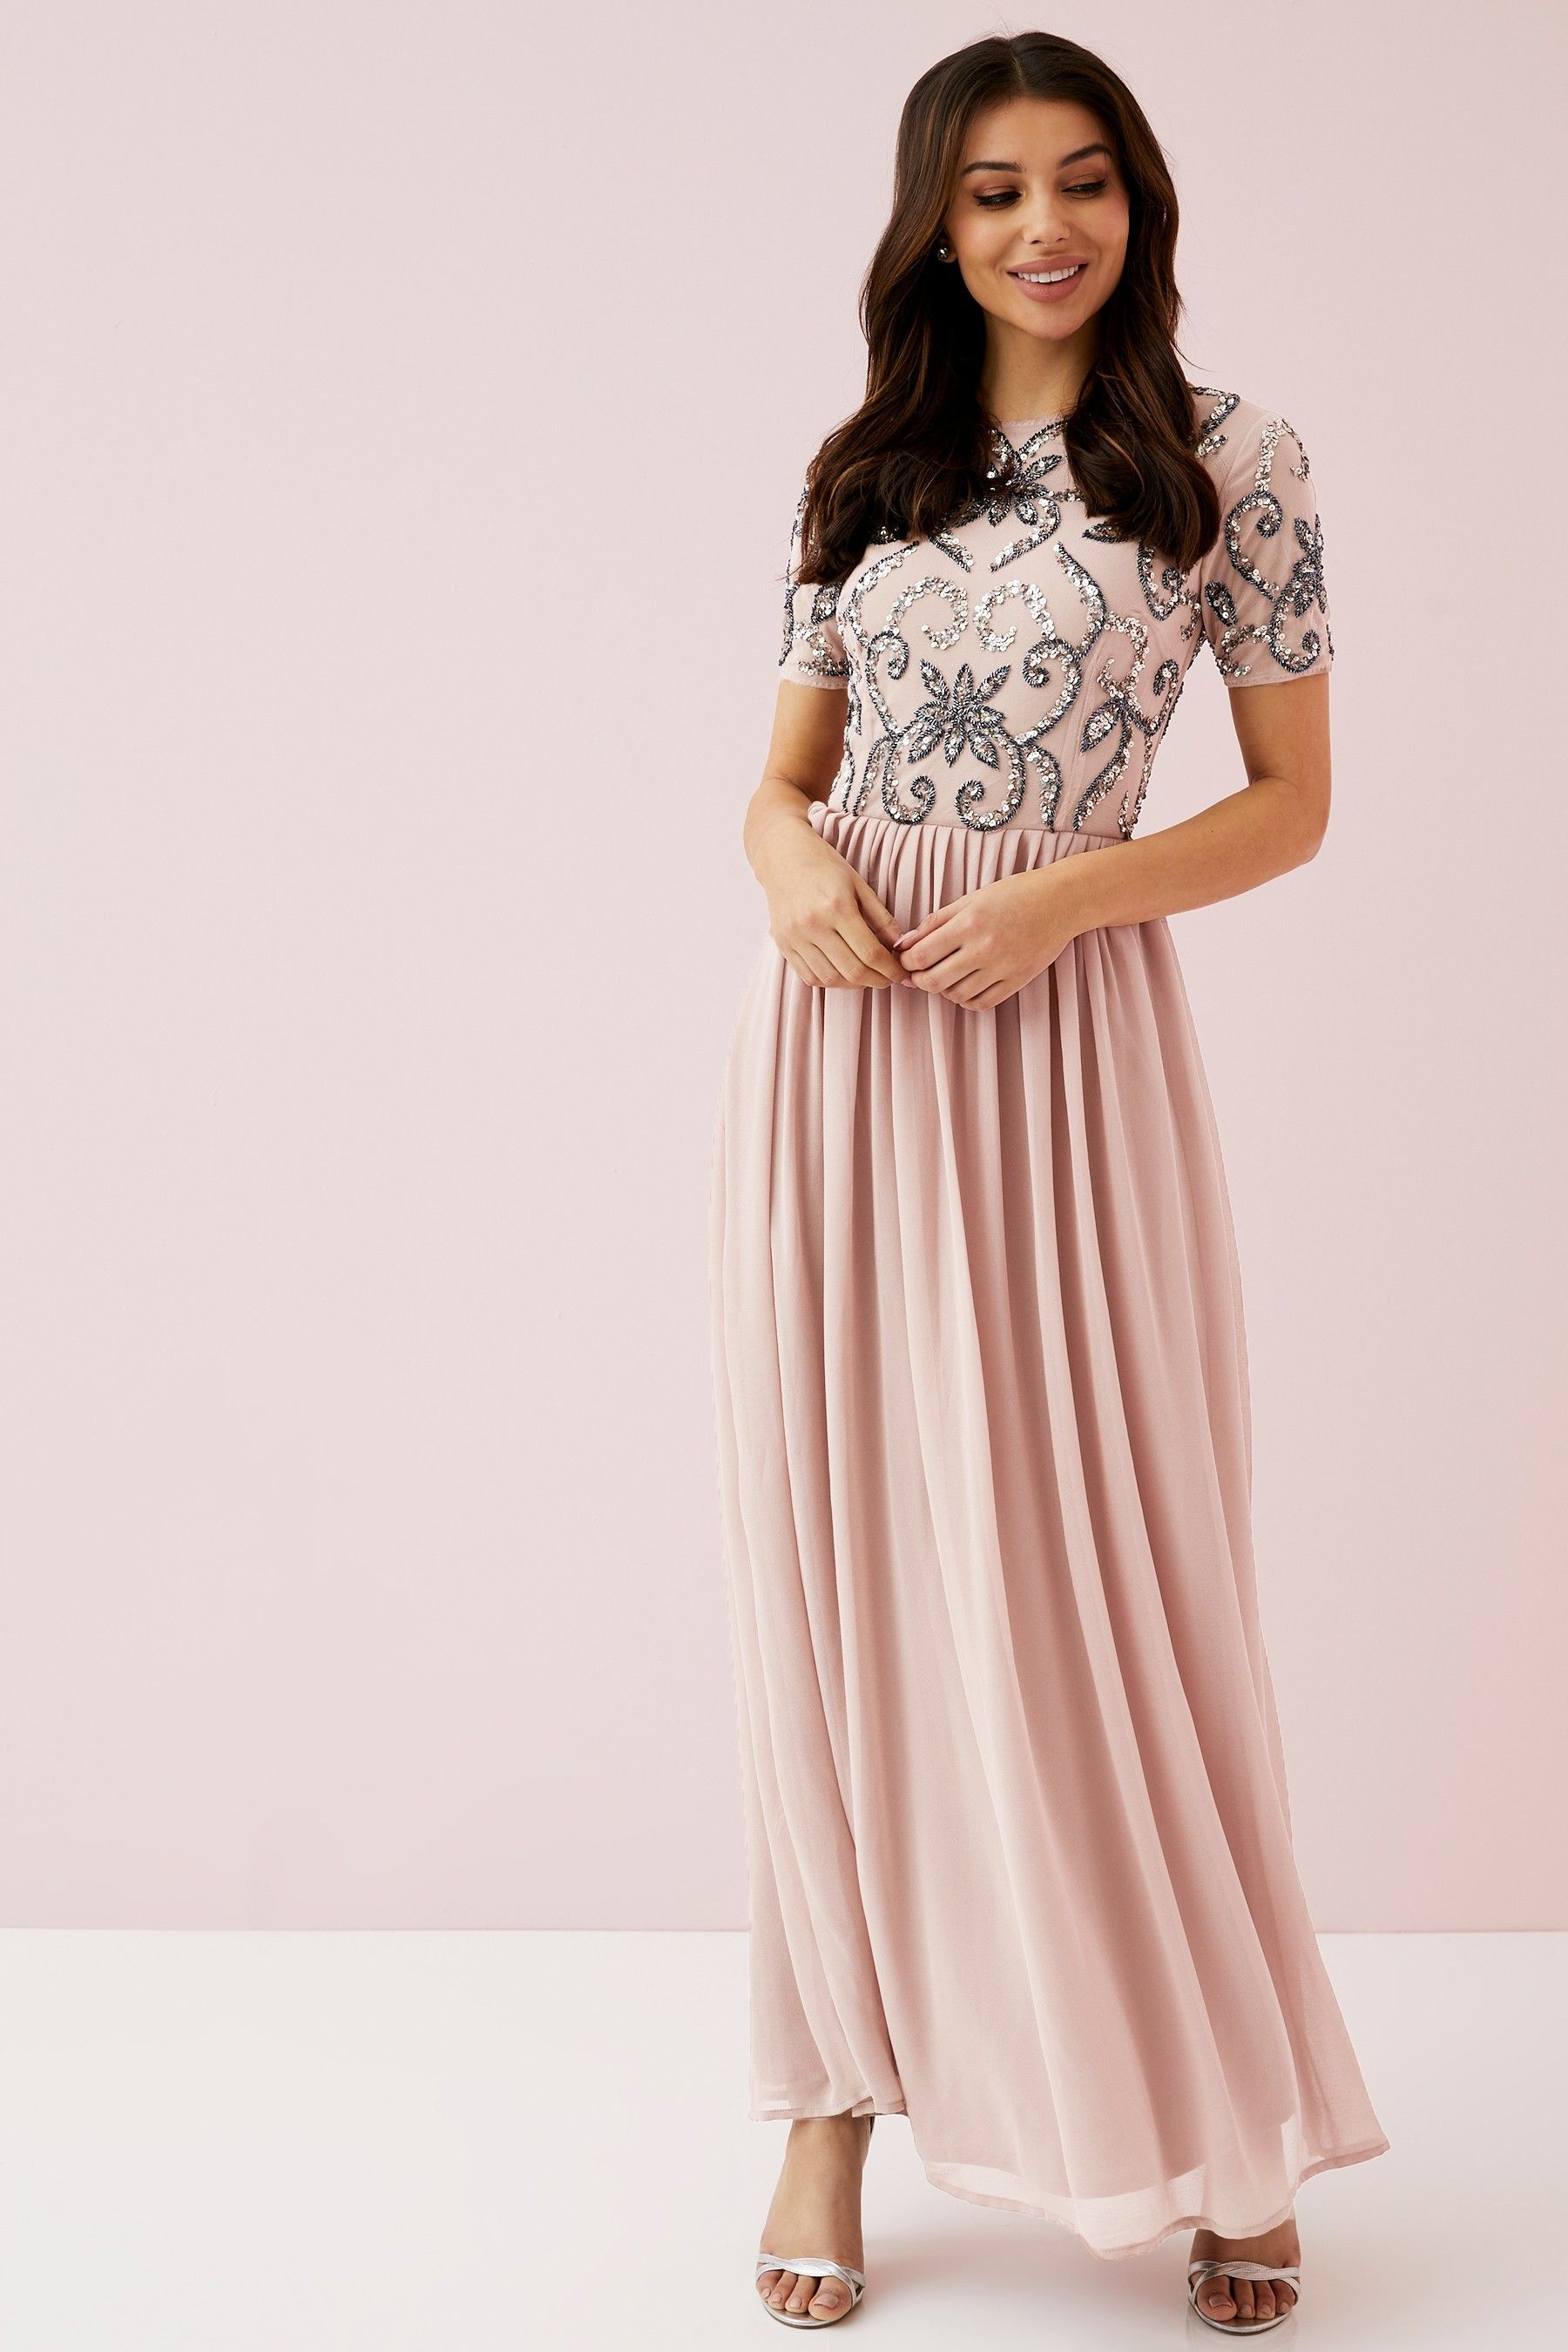 f6f8905959f3 Womens Angeleye Embellished Maxi Dress - Pink in 2019 | Products ...